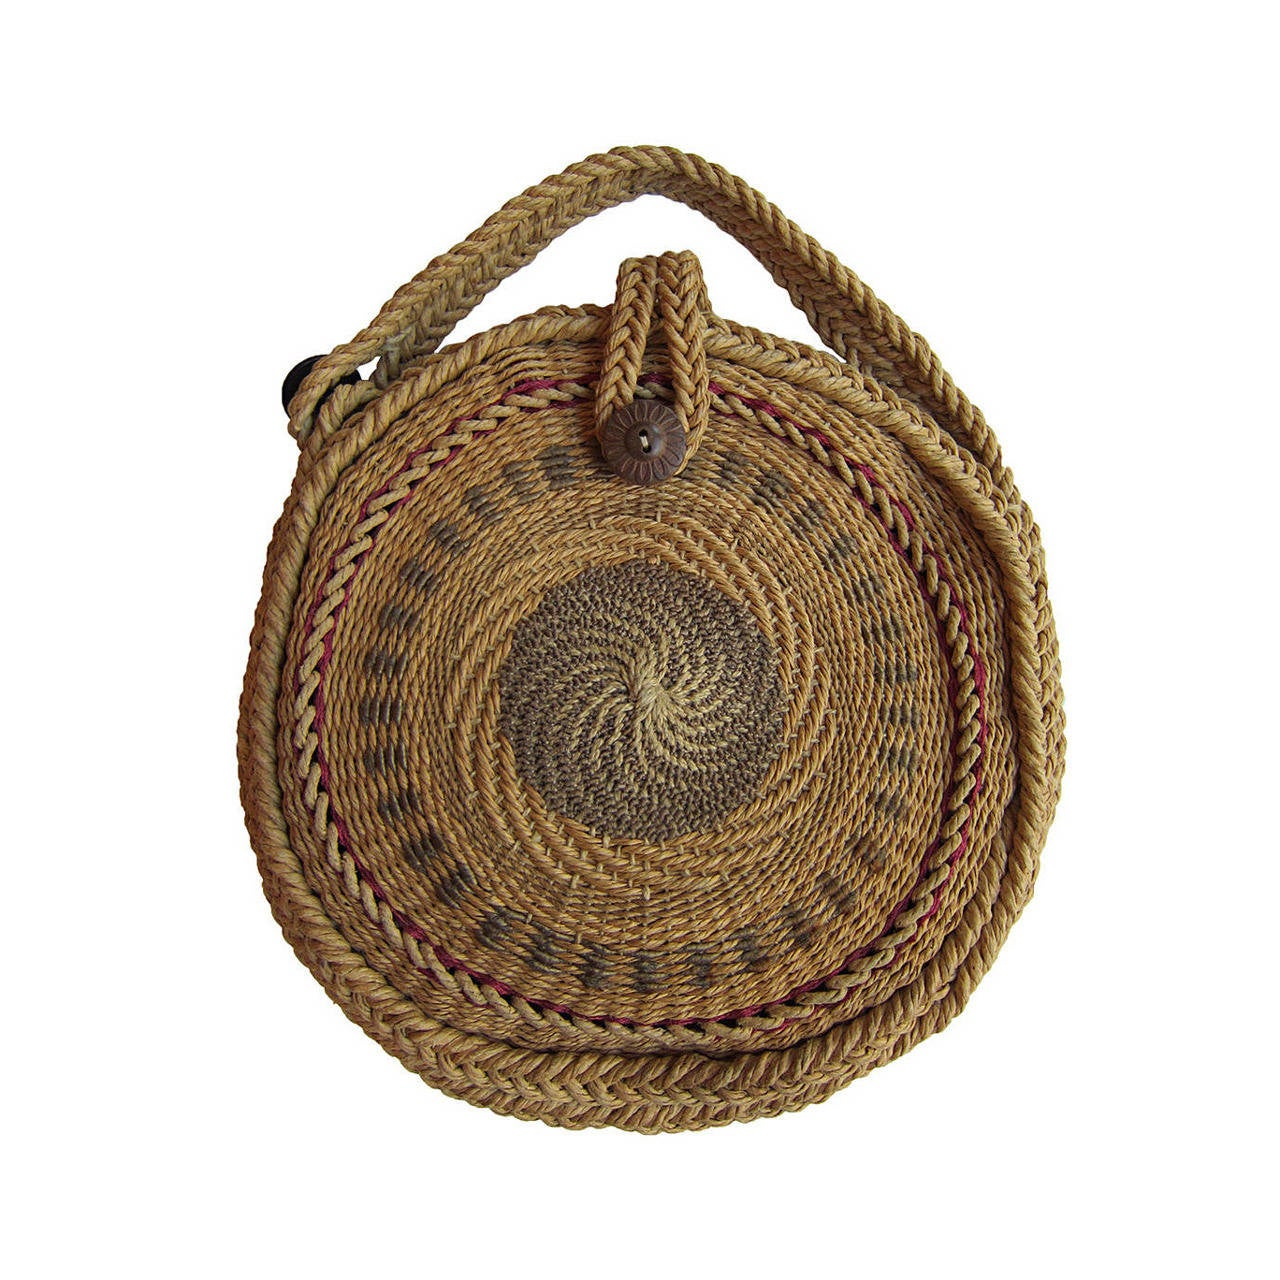 Woven Basket Purse : Woven twirl basket round purse s at stdibs